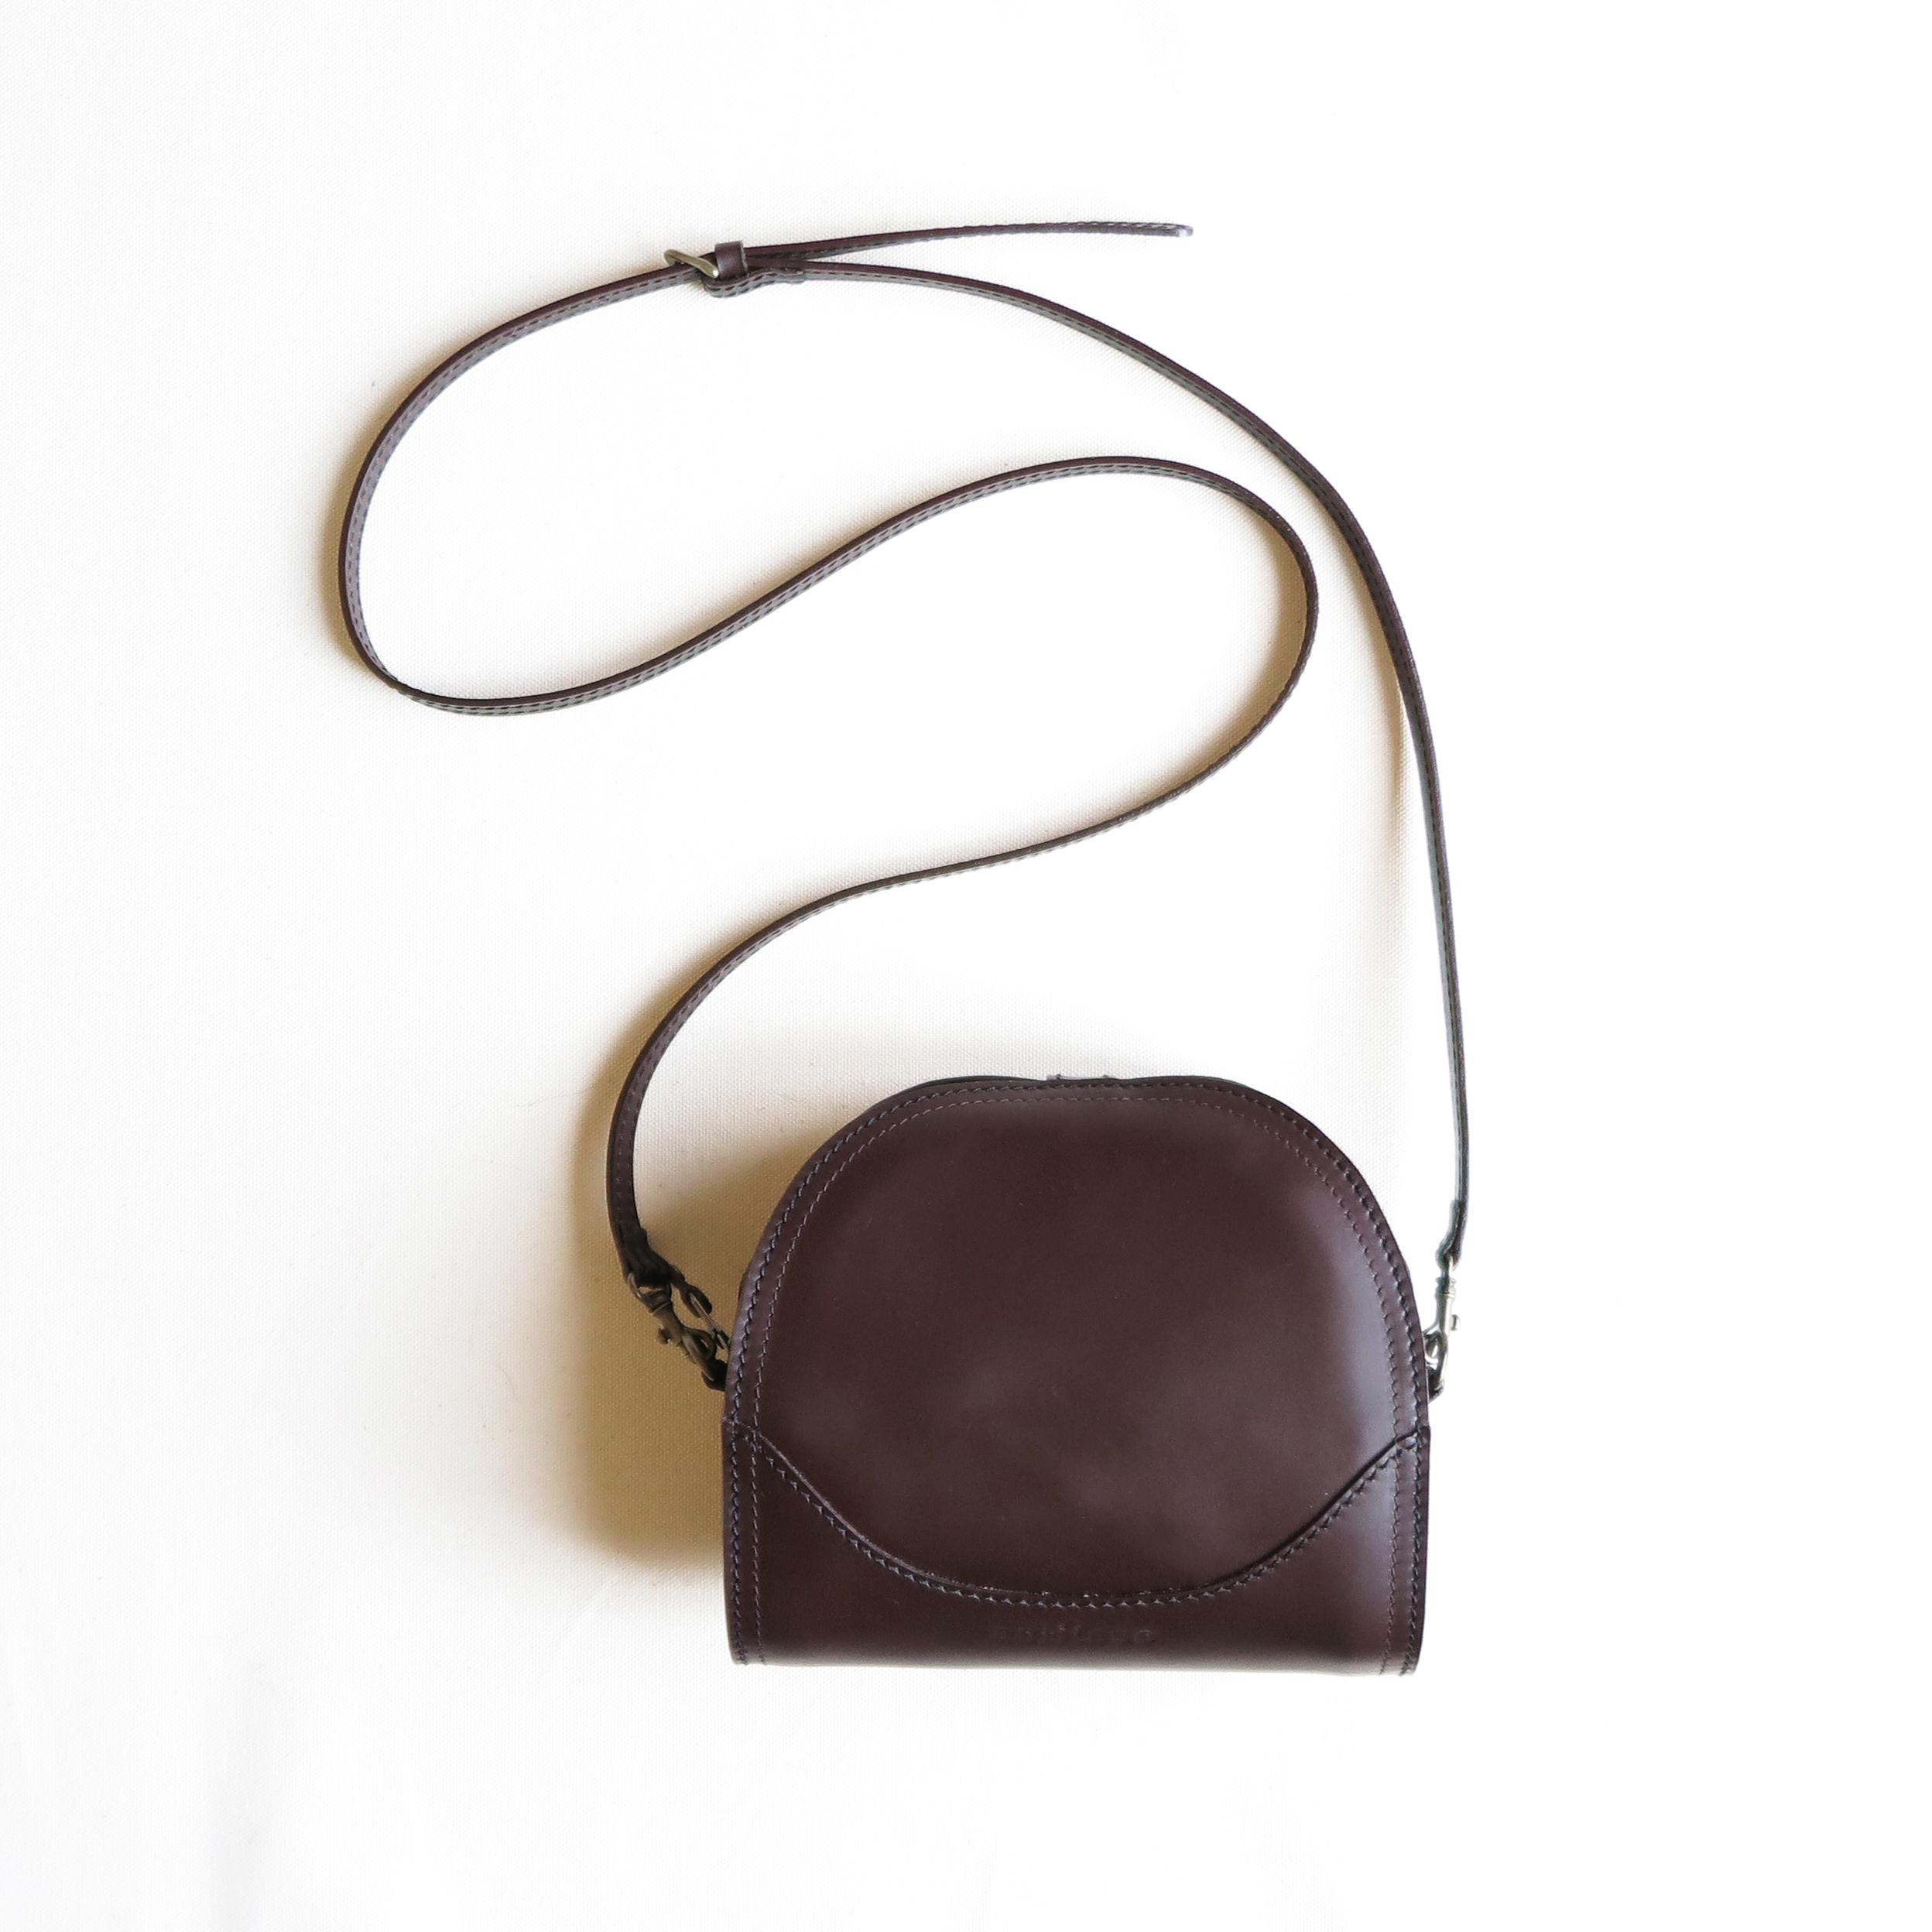 Vague pochette mini D.BROWN